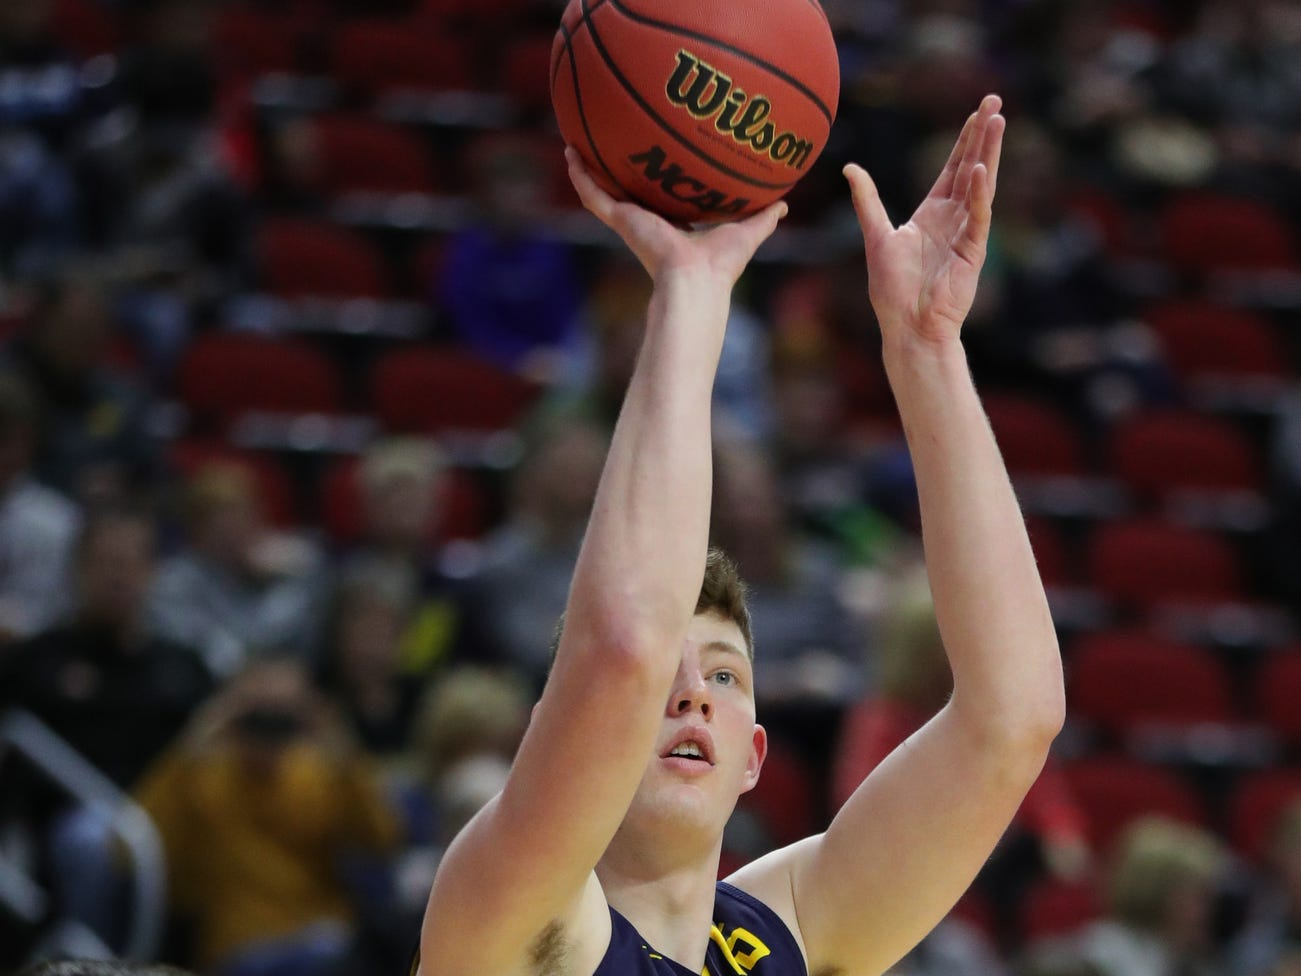 Michigan center Jon Teske shoots jumpers during practice for their first round NCAA Tournament game against Montana Wednesday, March 20, 2019 at Wells Fargo Arena in Des Moines, Iowa.